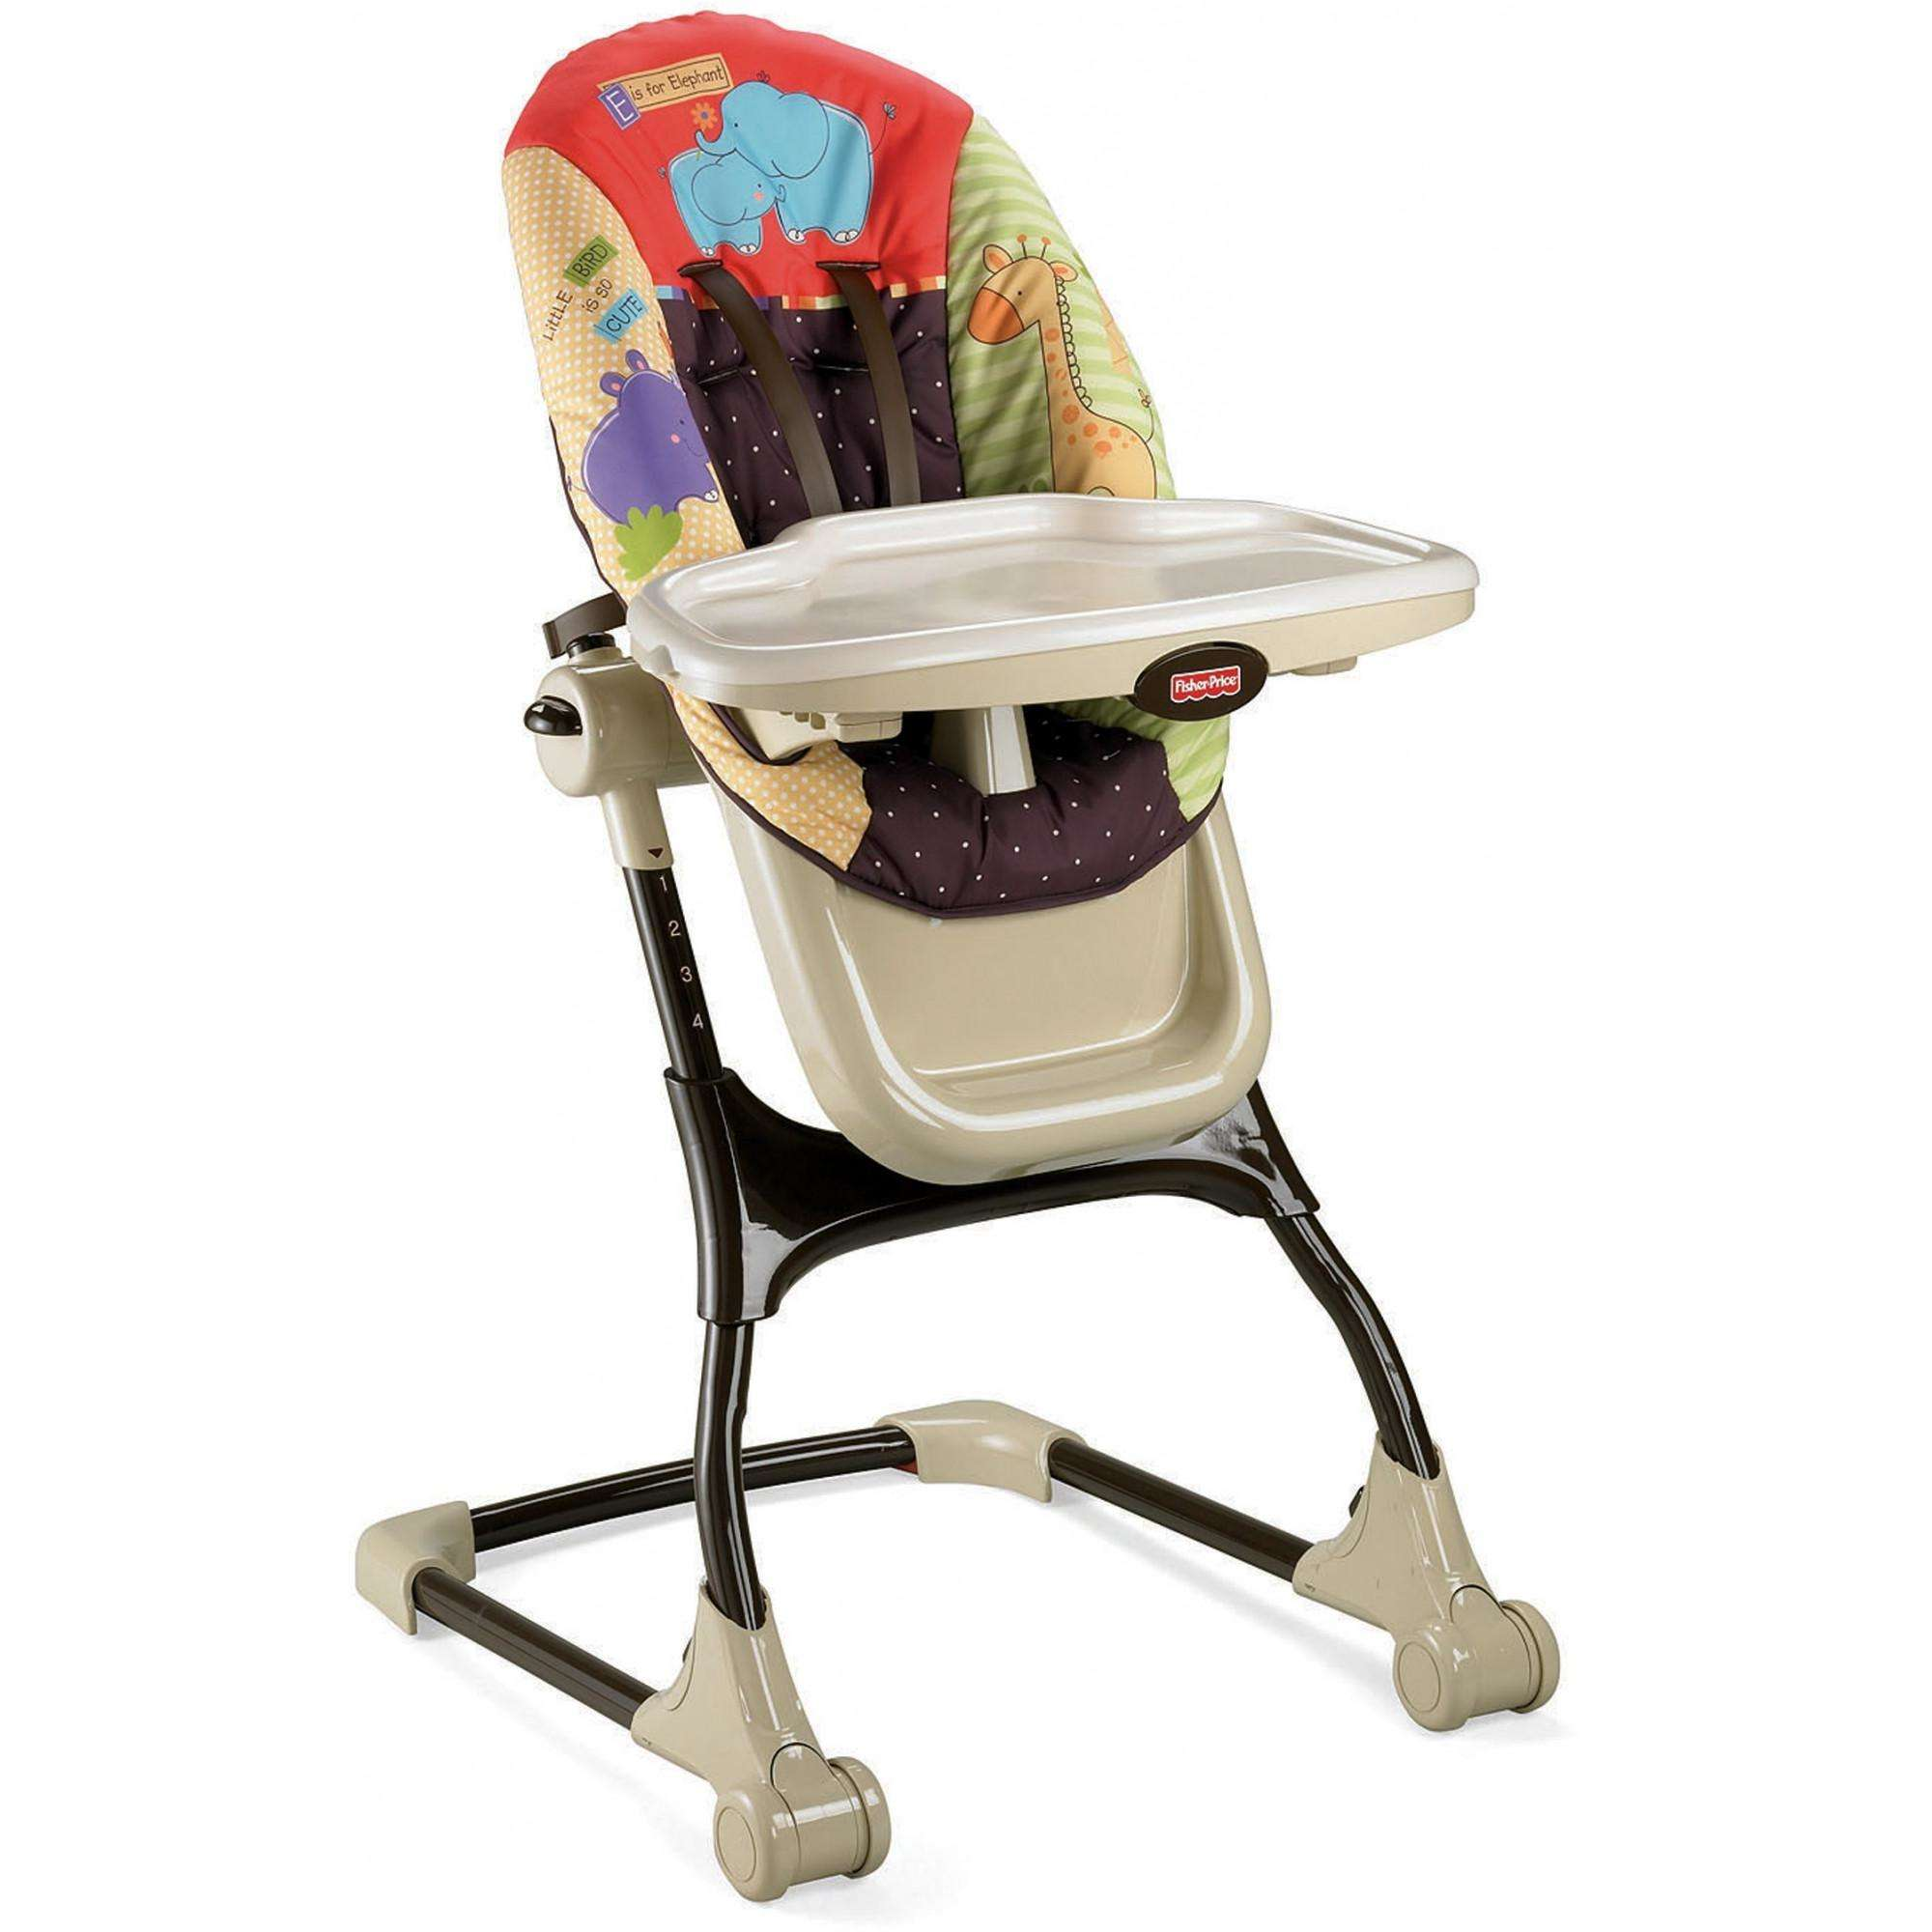 High Chair Fisher Price Fisher Price Ez Clean High Chair Luv U Zoo Walmart